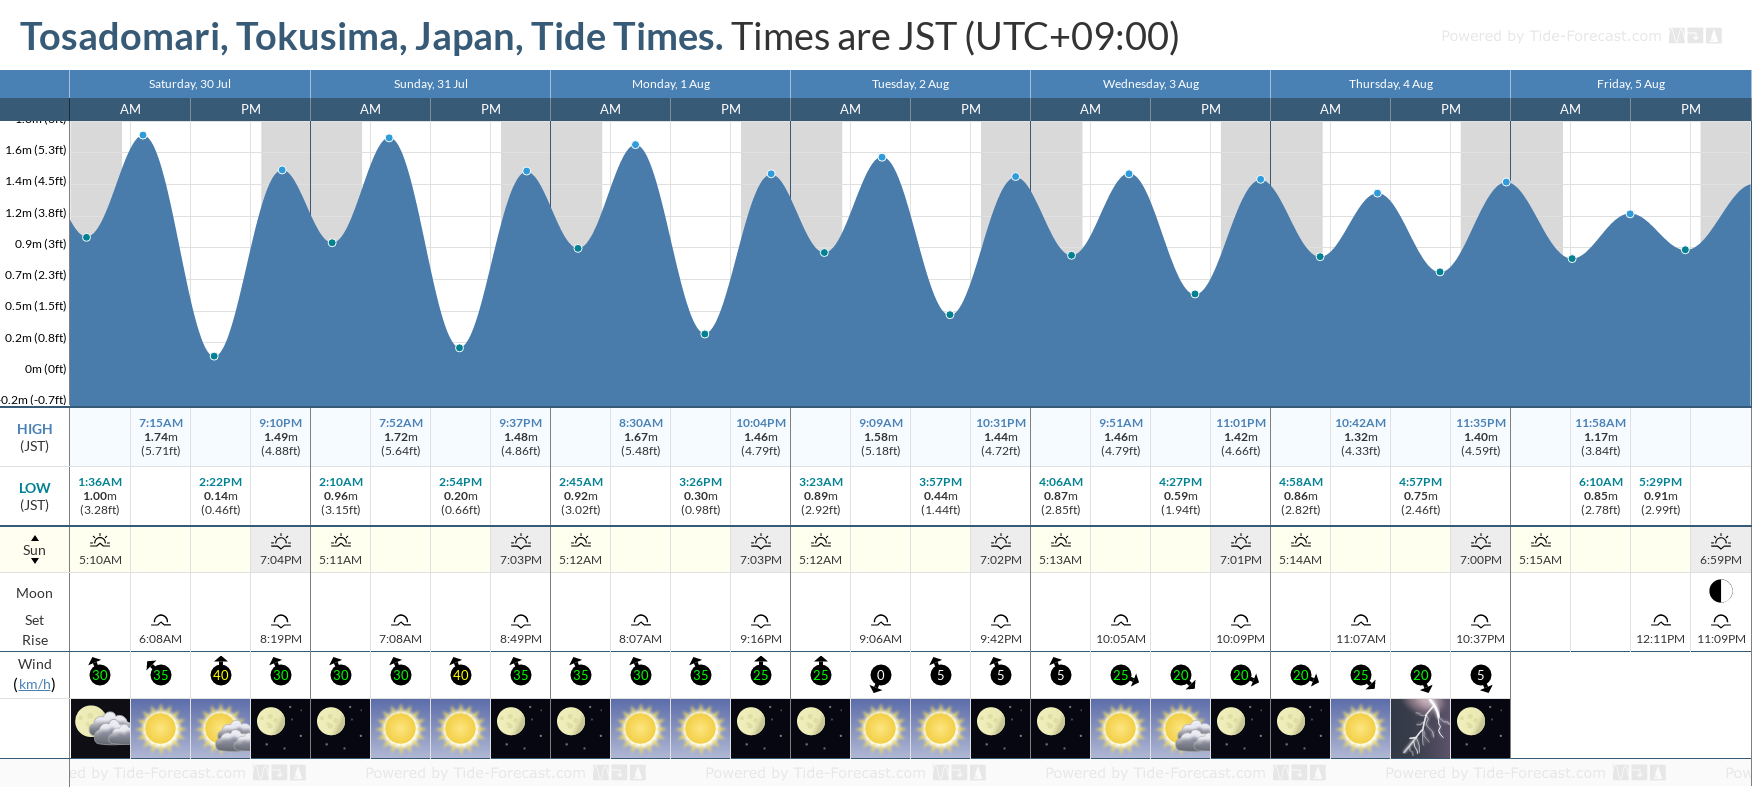 Tosadomari, Tokusima, Japan Tide Chart including high and low tide tide times for the next 7 days